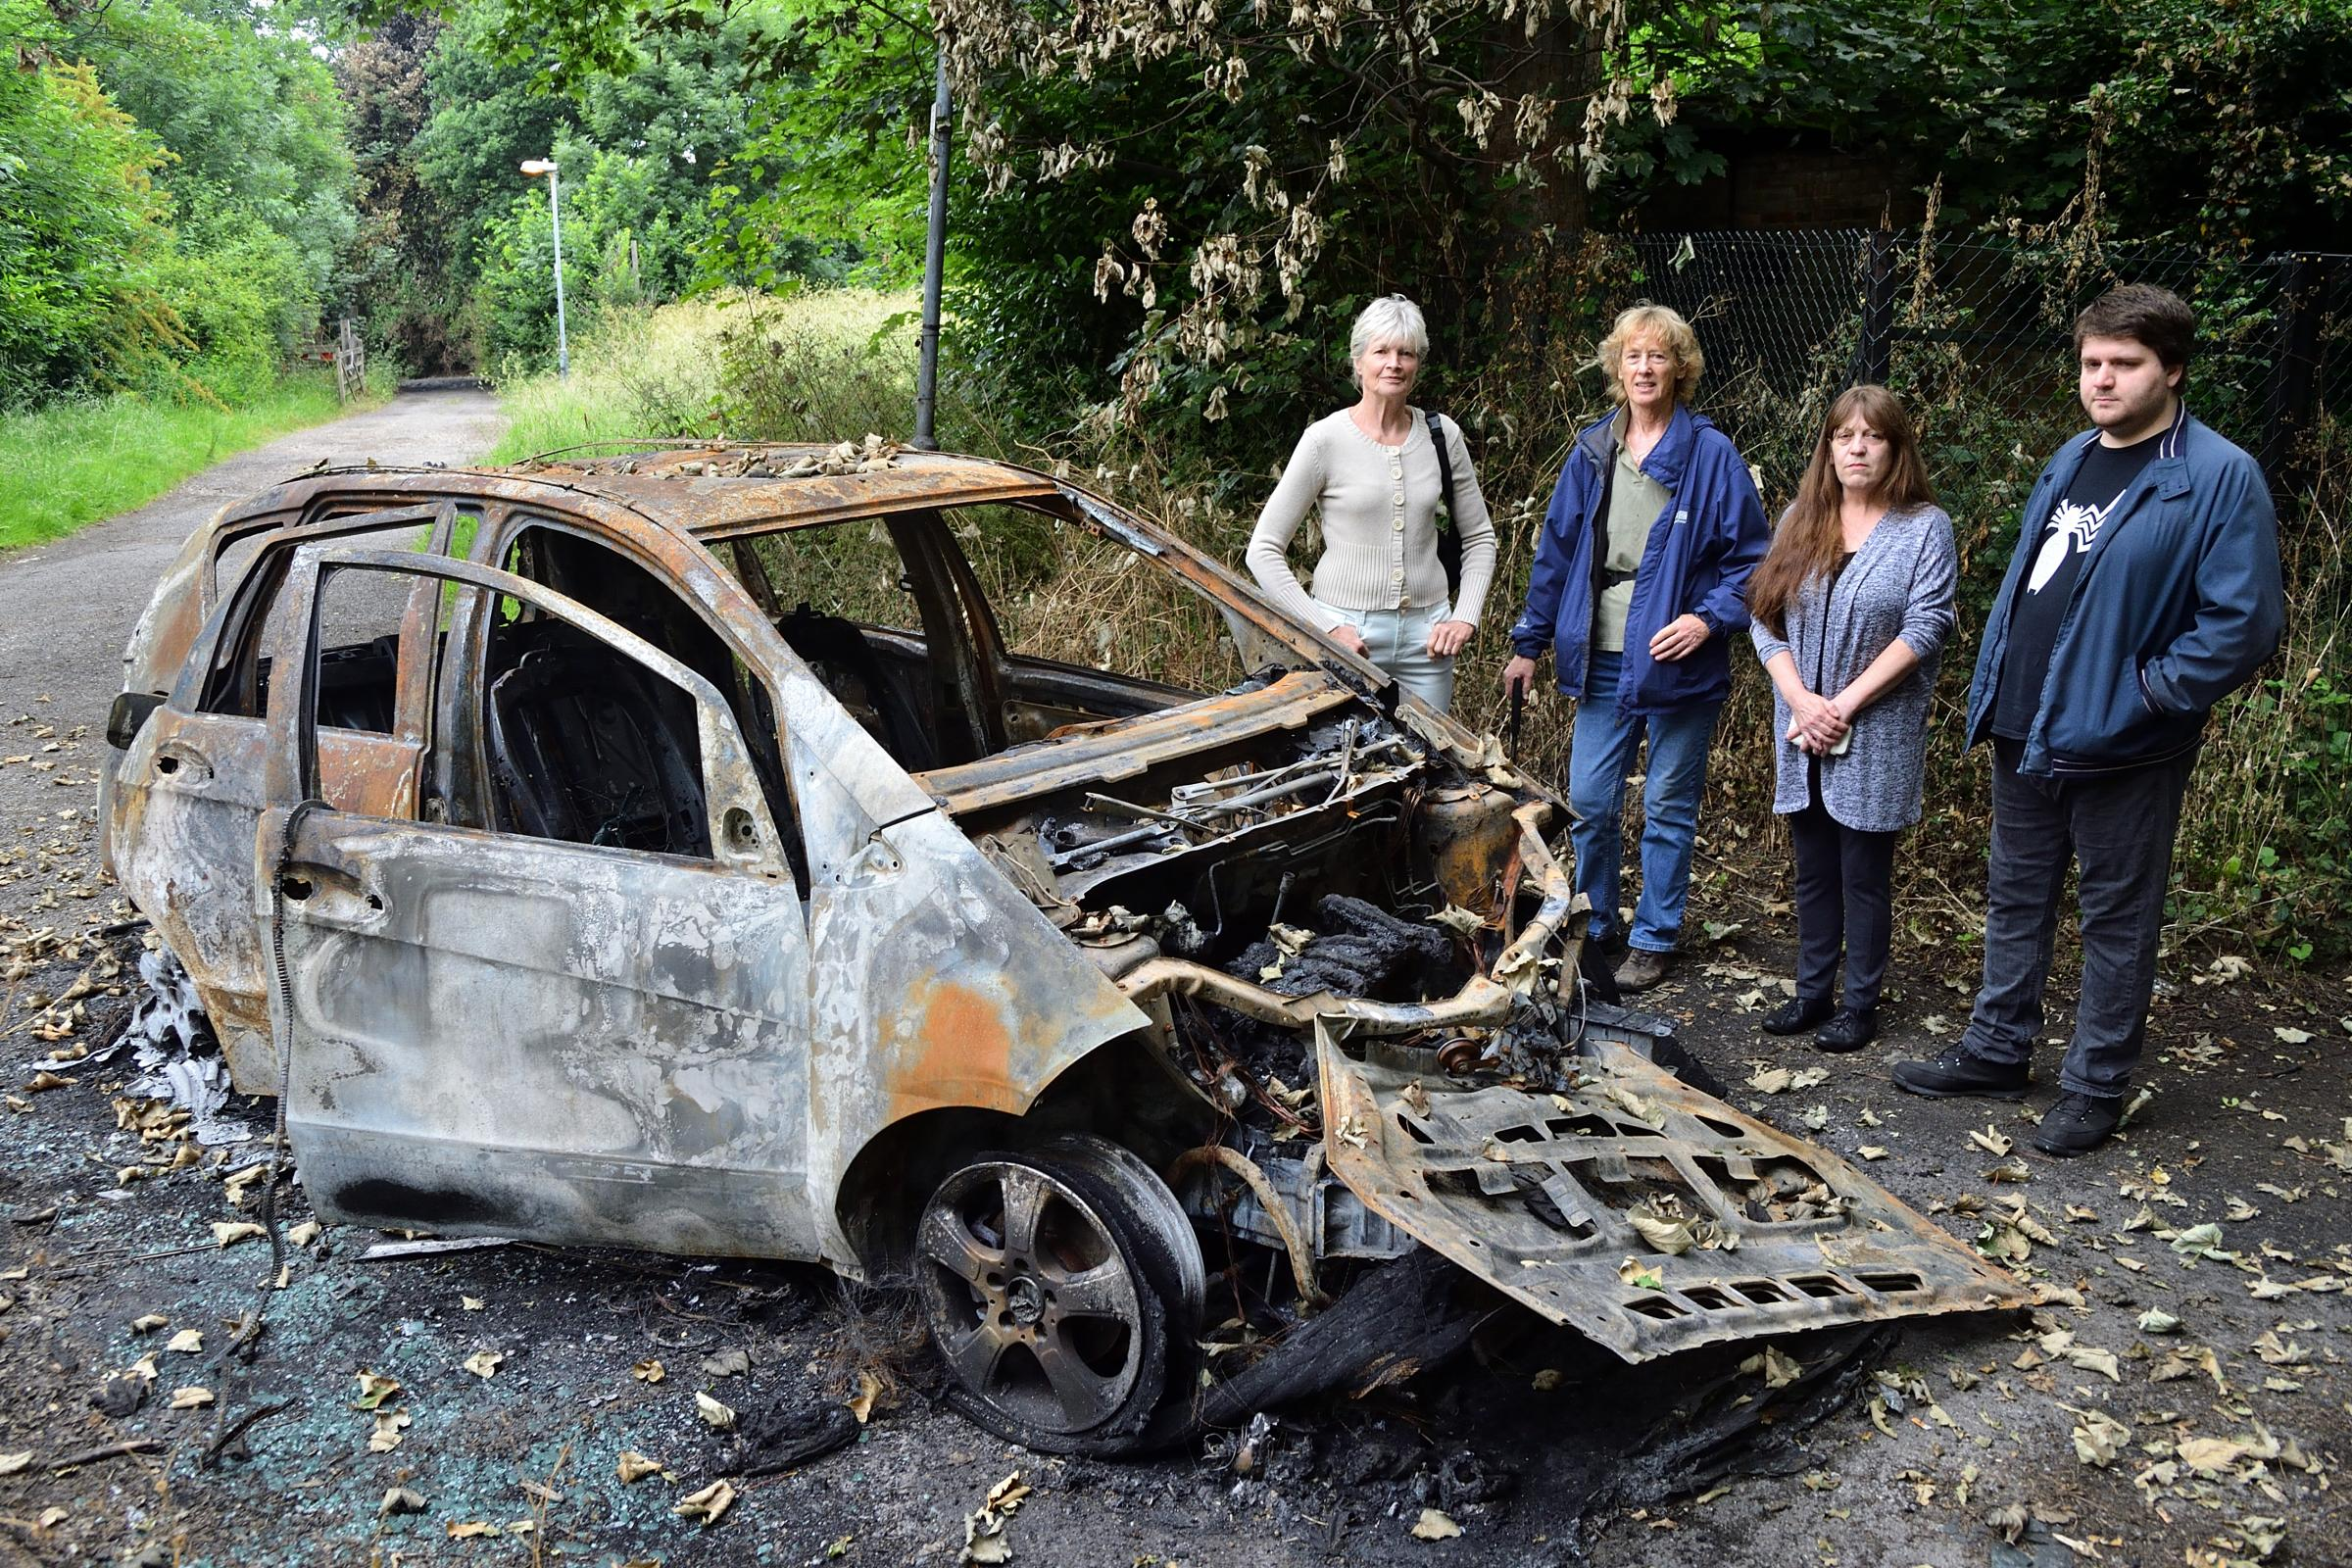 Mother living in fear of yobs who set fire to cars outside her house